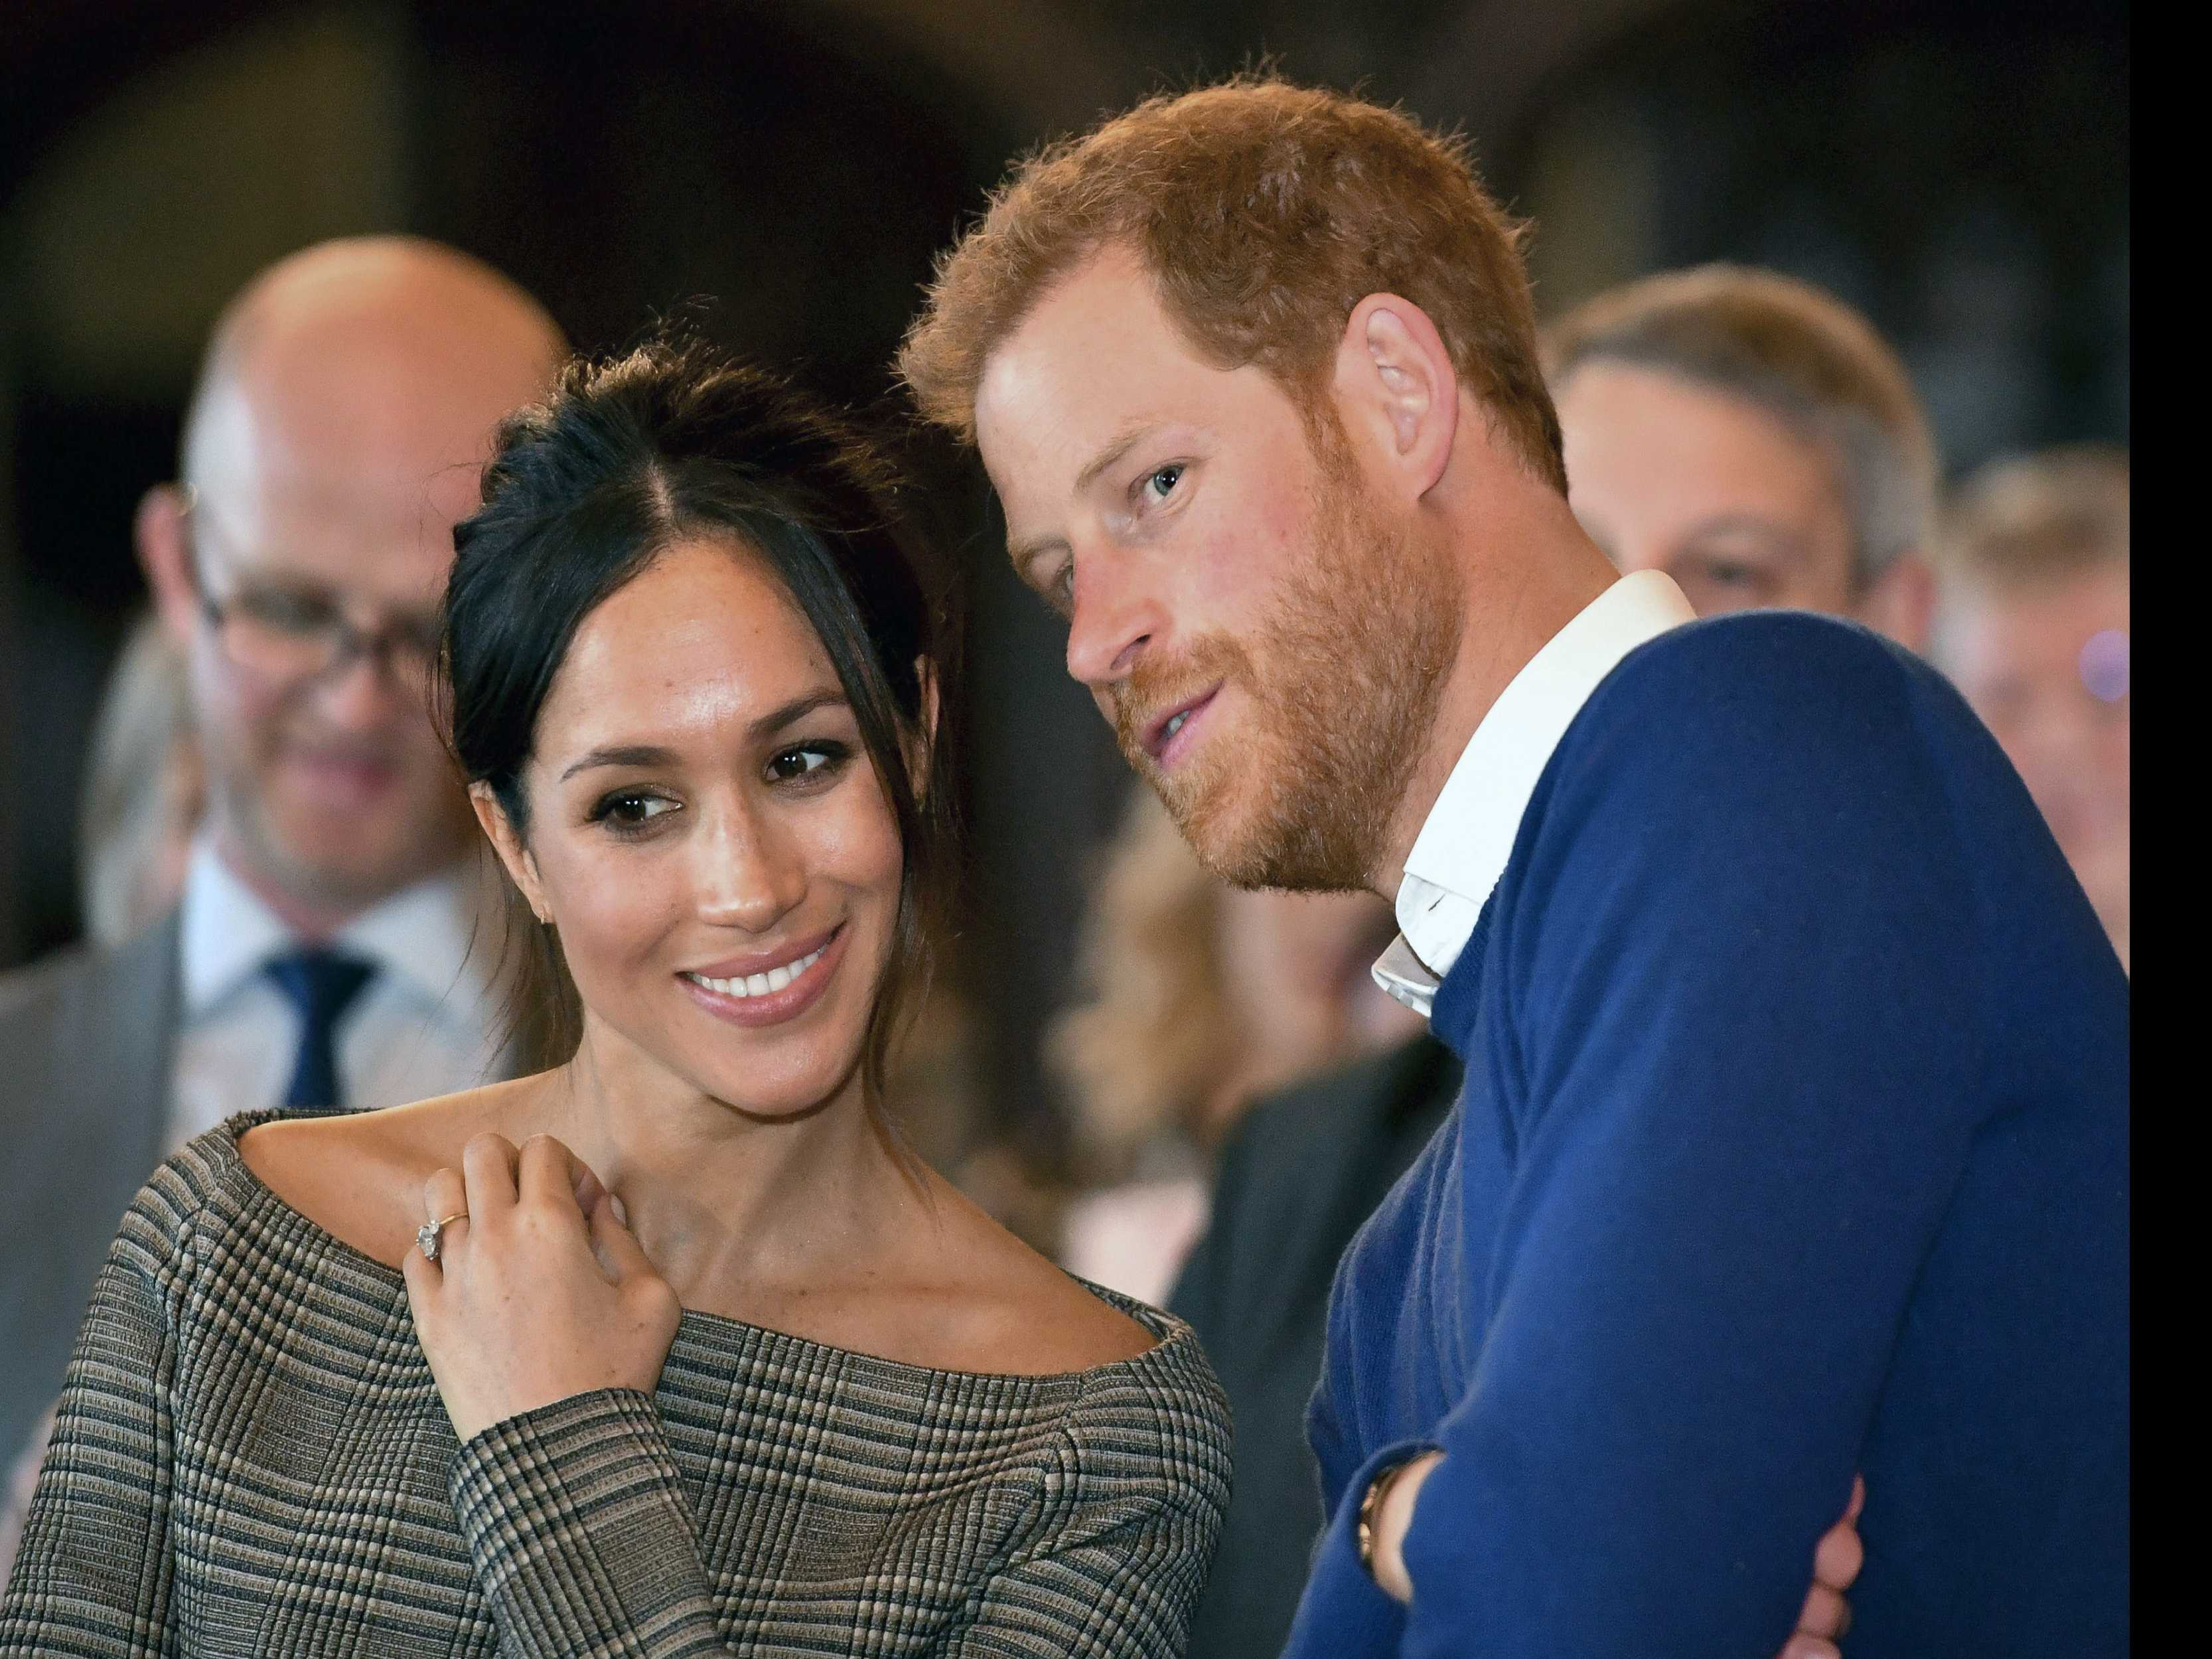 What Will Meghan Wear? Royal Wedding Dress a UK Secret